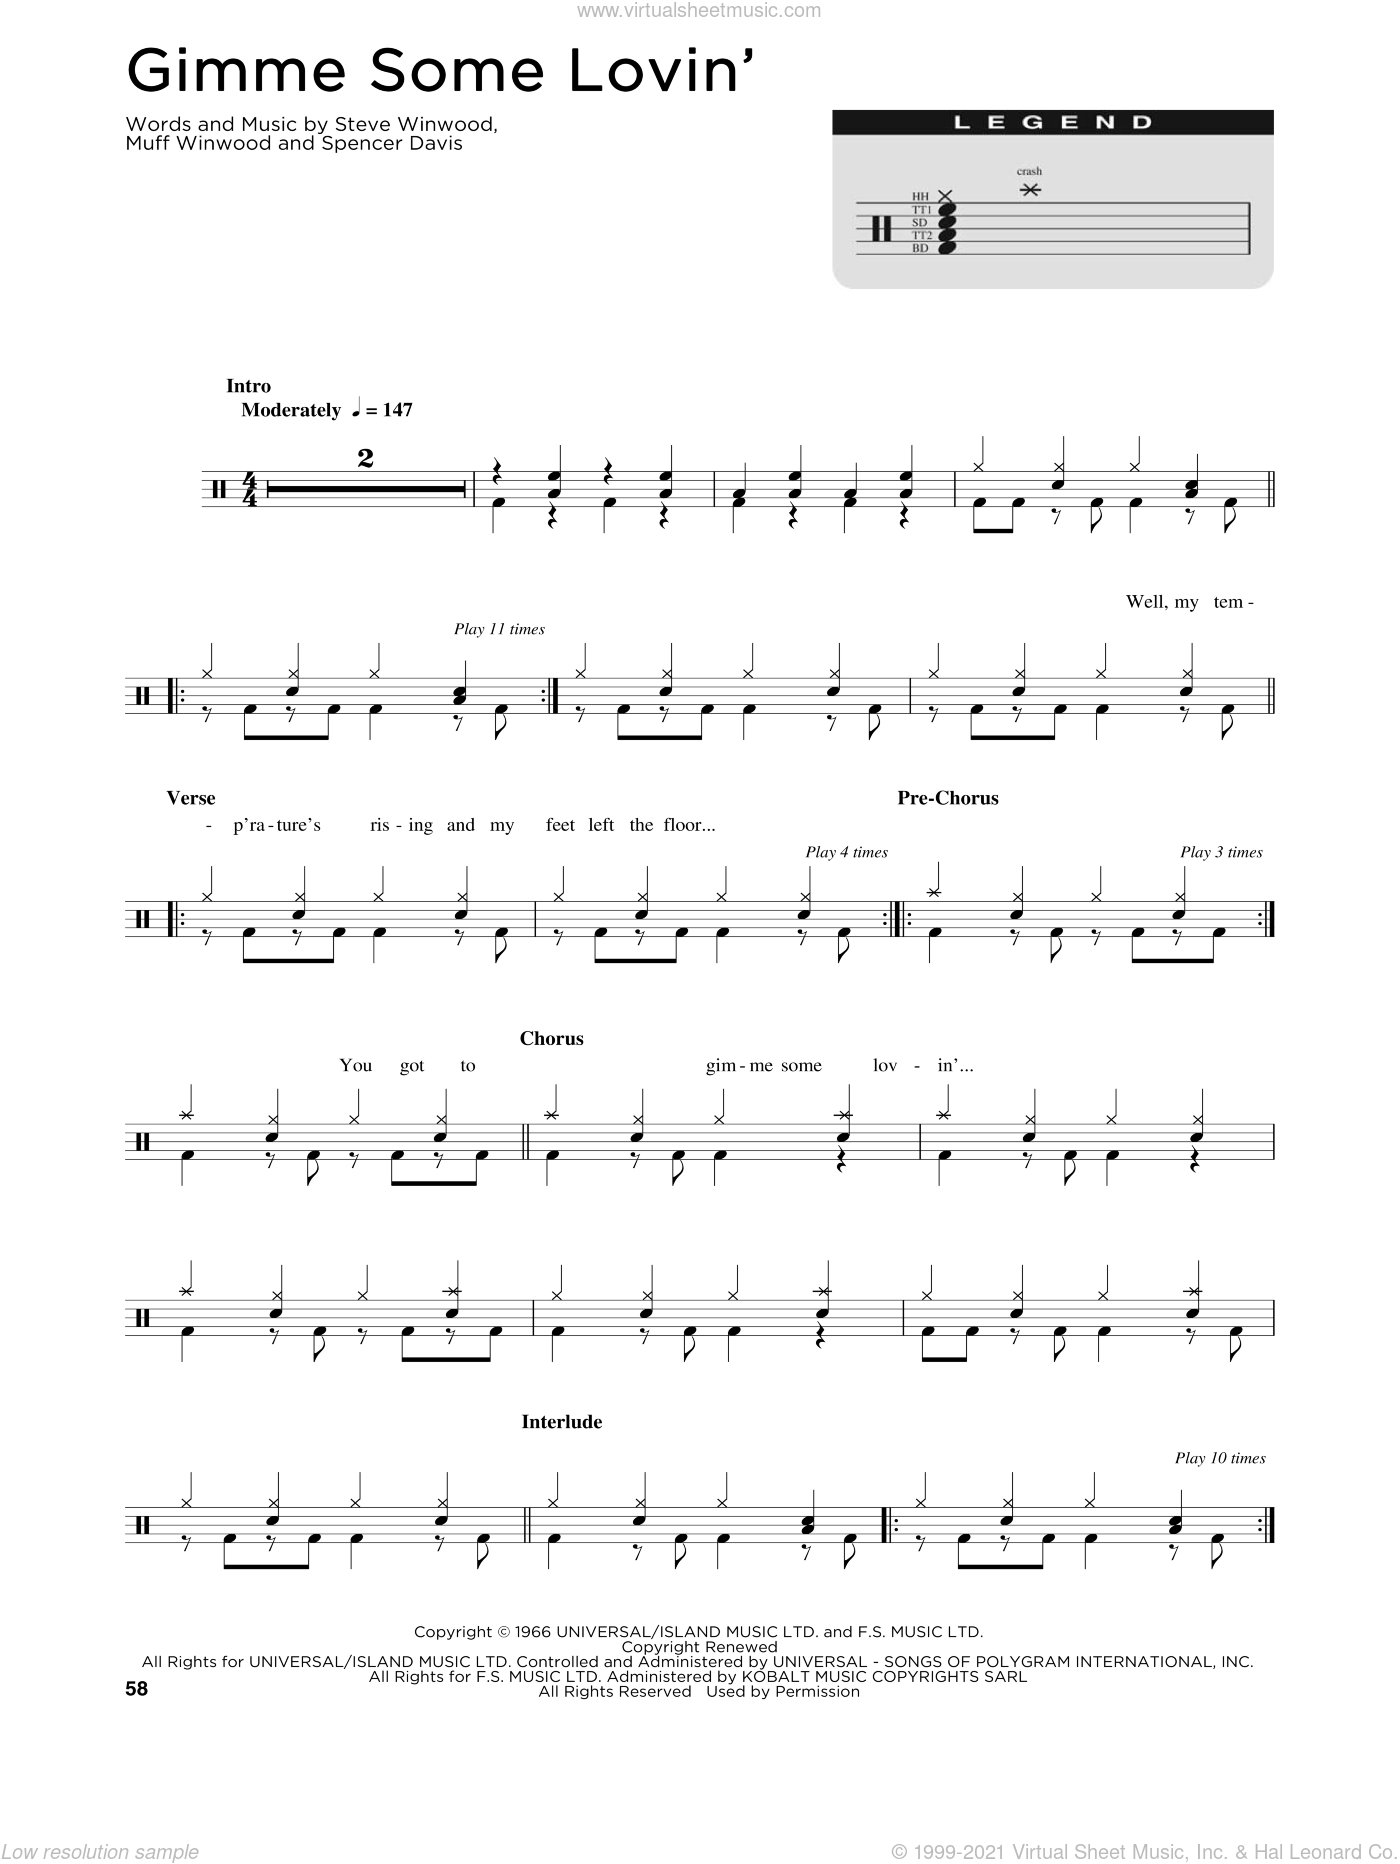 Gimme Some Lovin' sheet music for drums (percussions) by The Spencer Davis Group, Muff Winwood, Spencer Davis and Steve Winwood, intermediate skill level